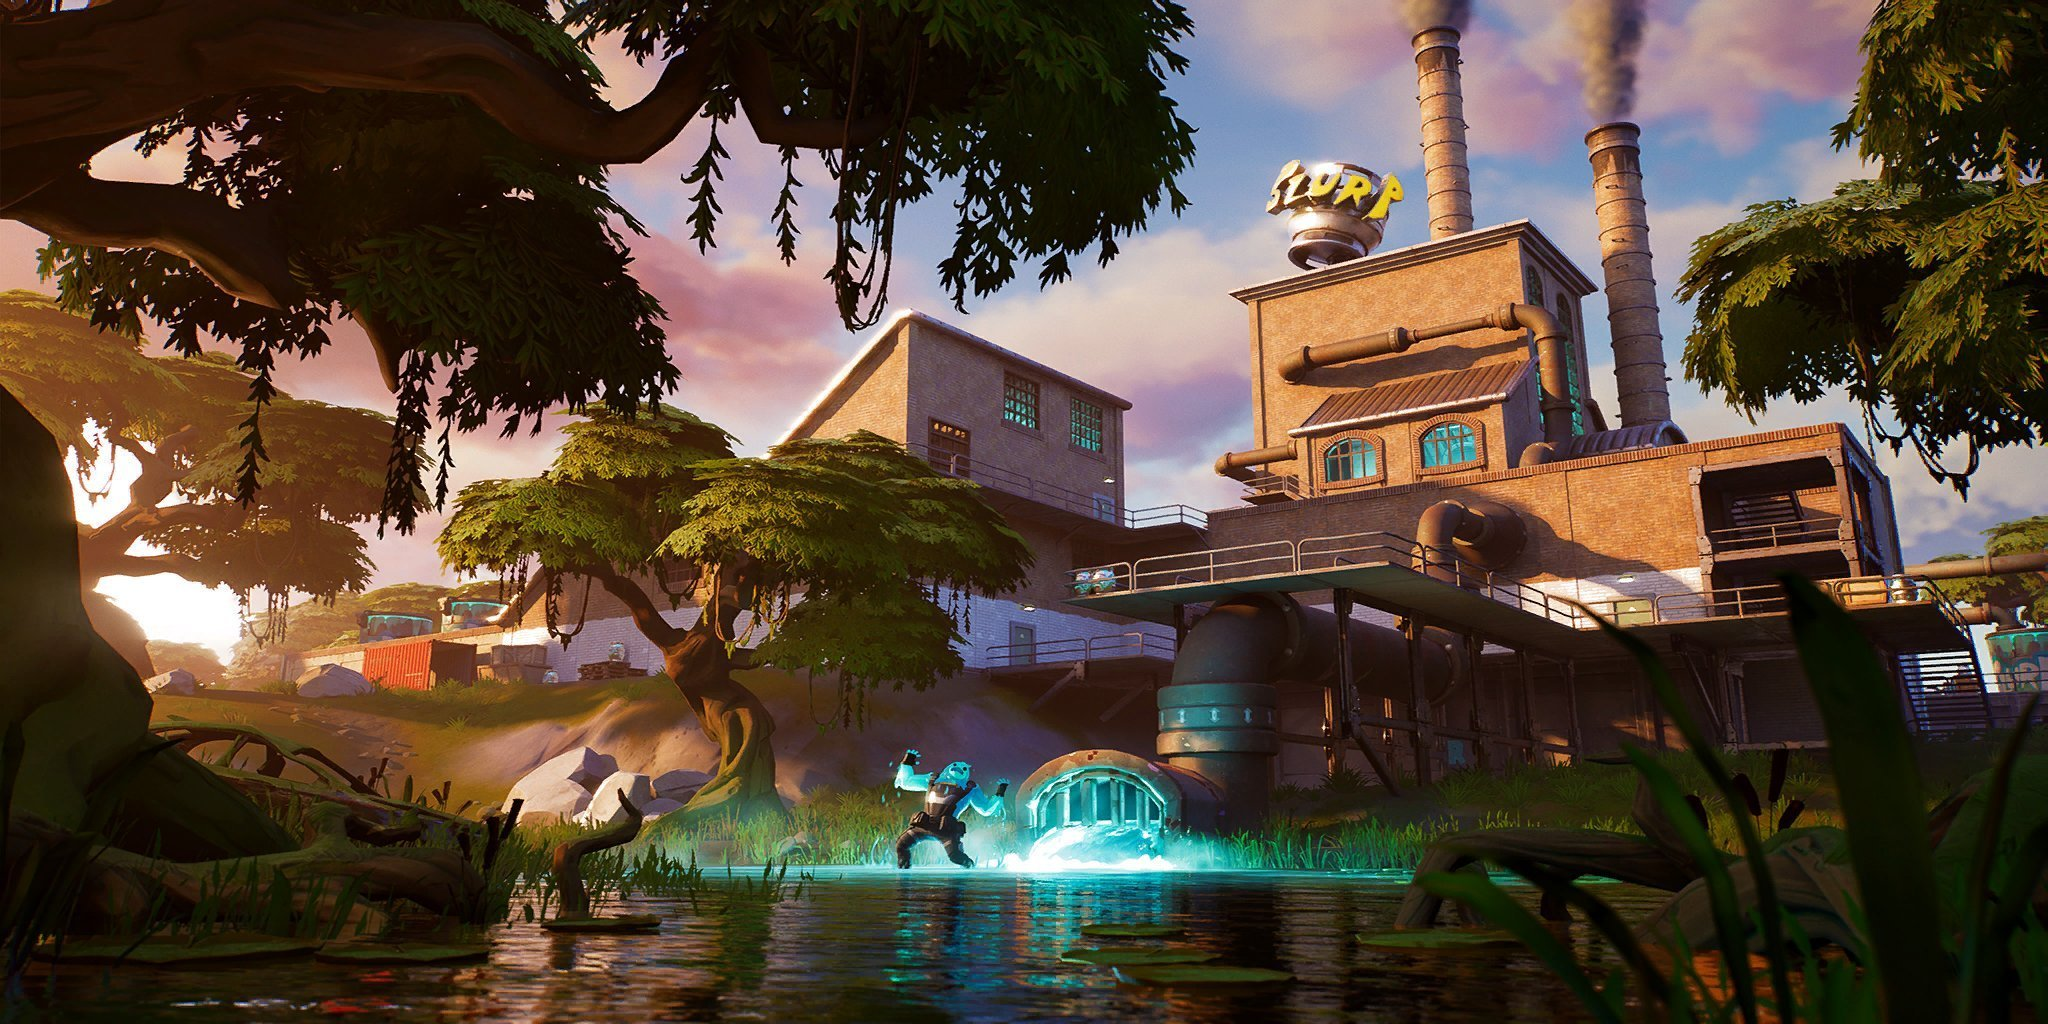 Fortnite returns with Chapter 2, creating huge buzz